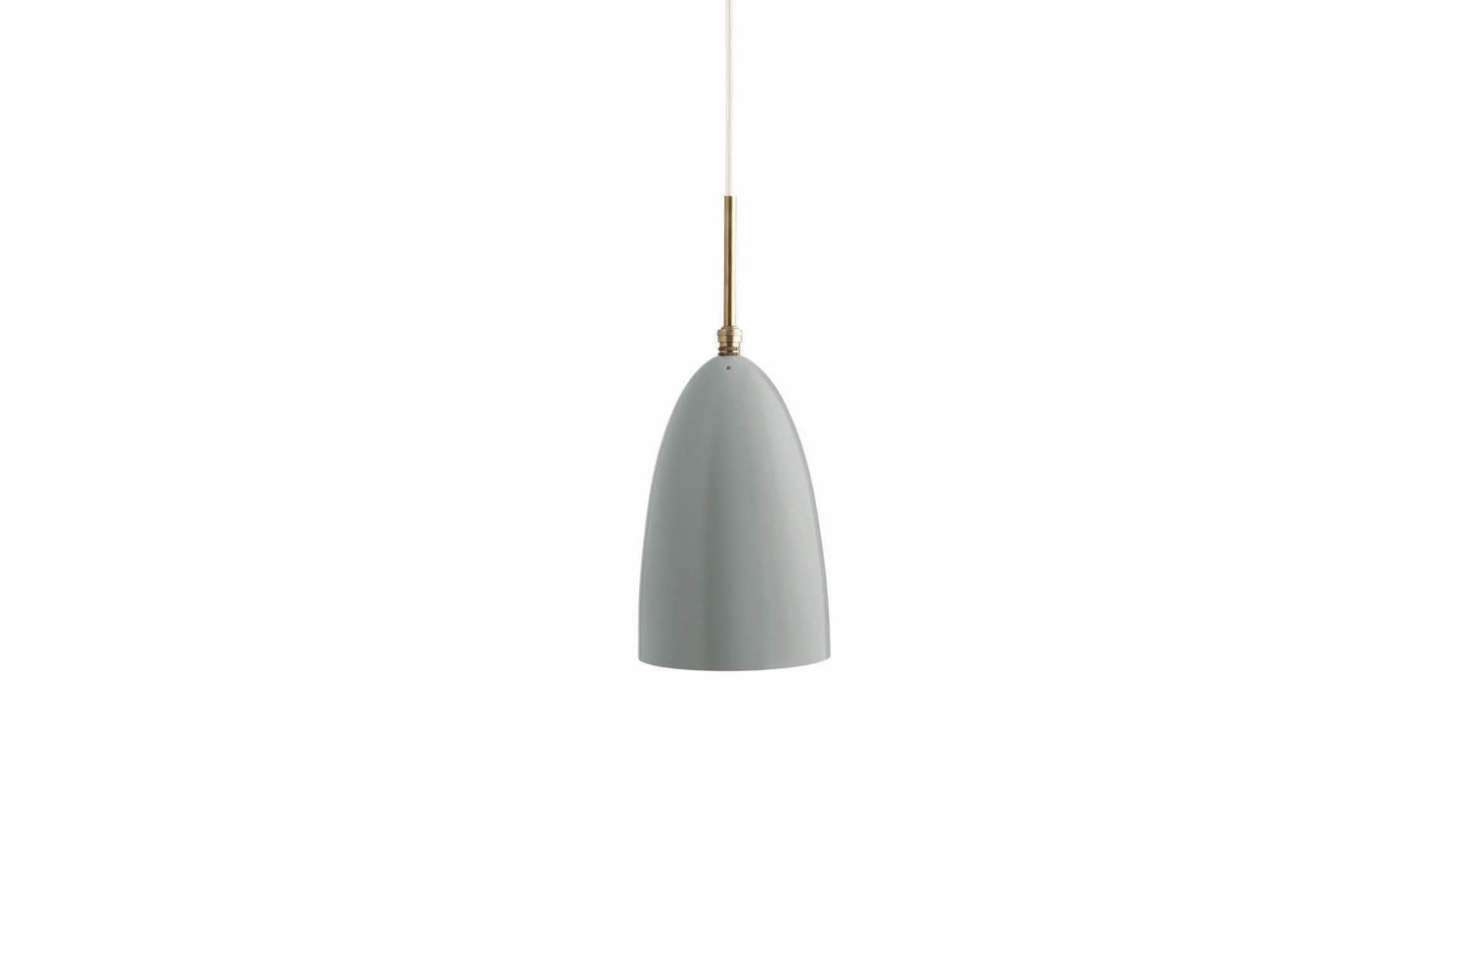 The Grossman Grashoppa Pendant Light in Blue Gray (shown) is $359 at YLighting.